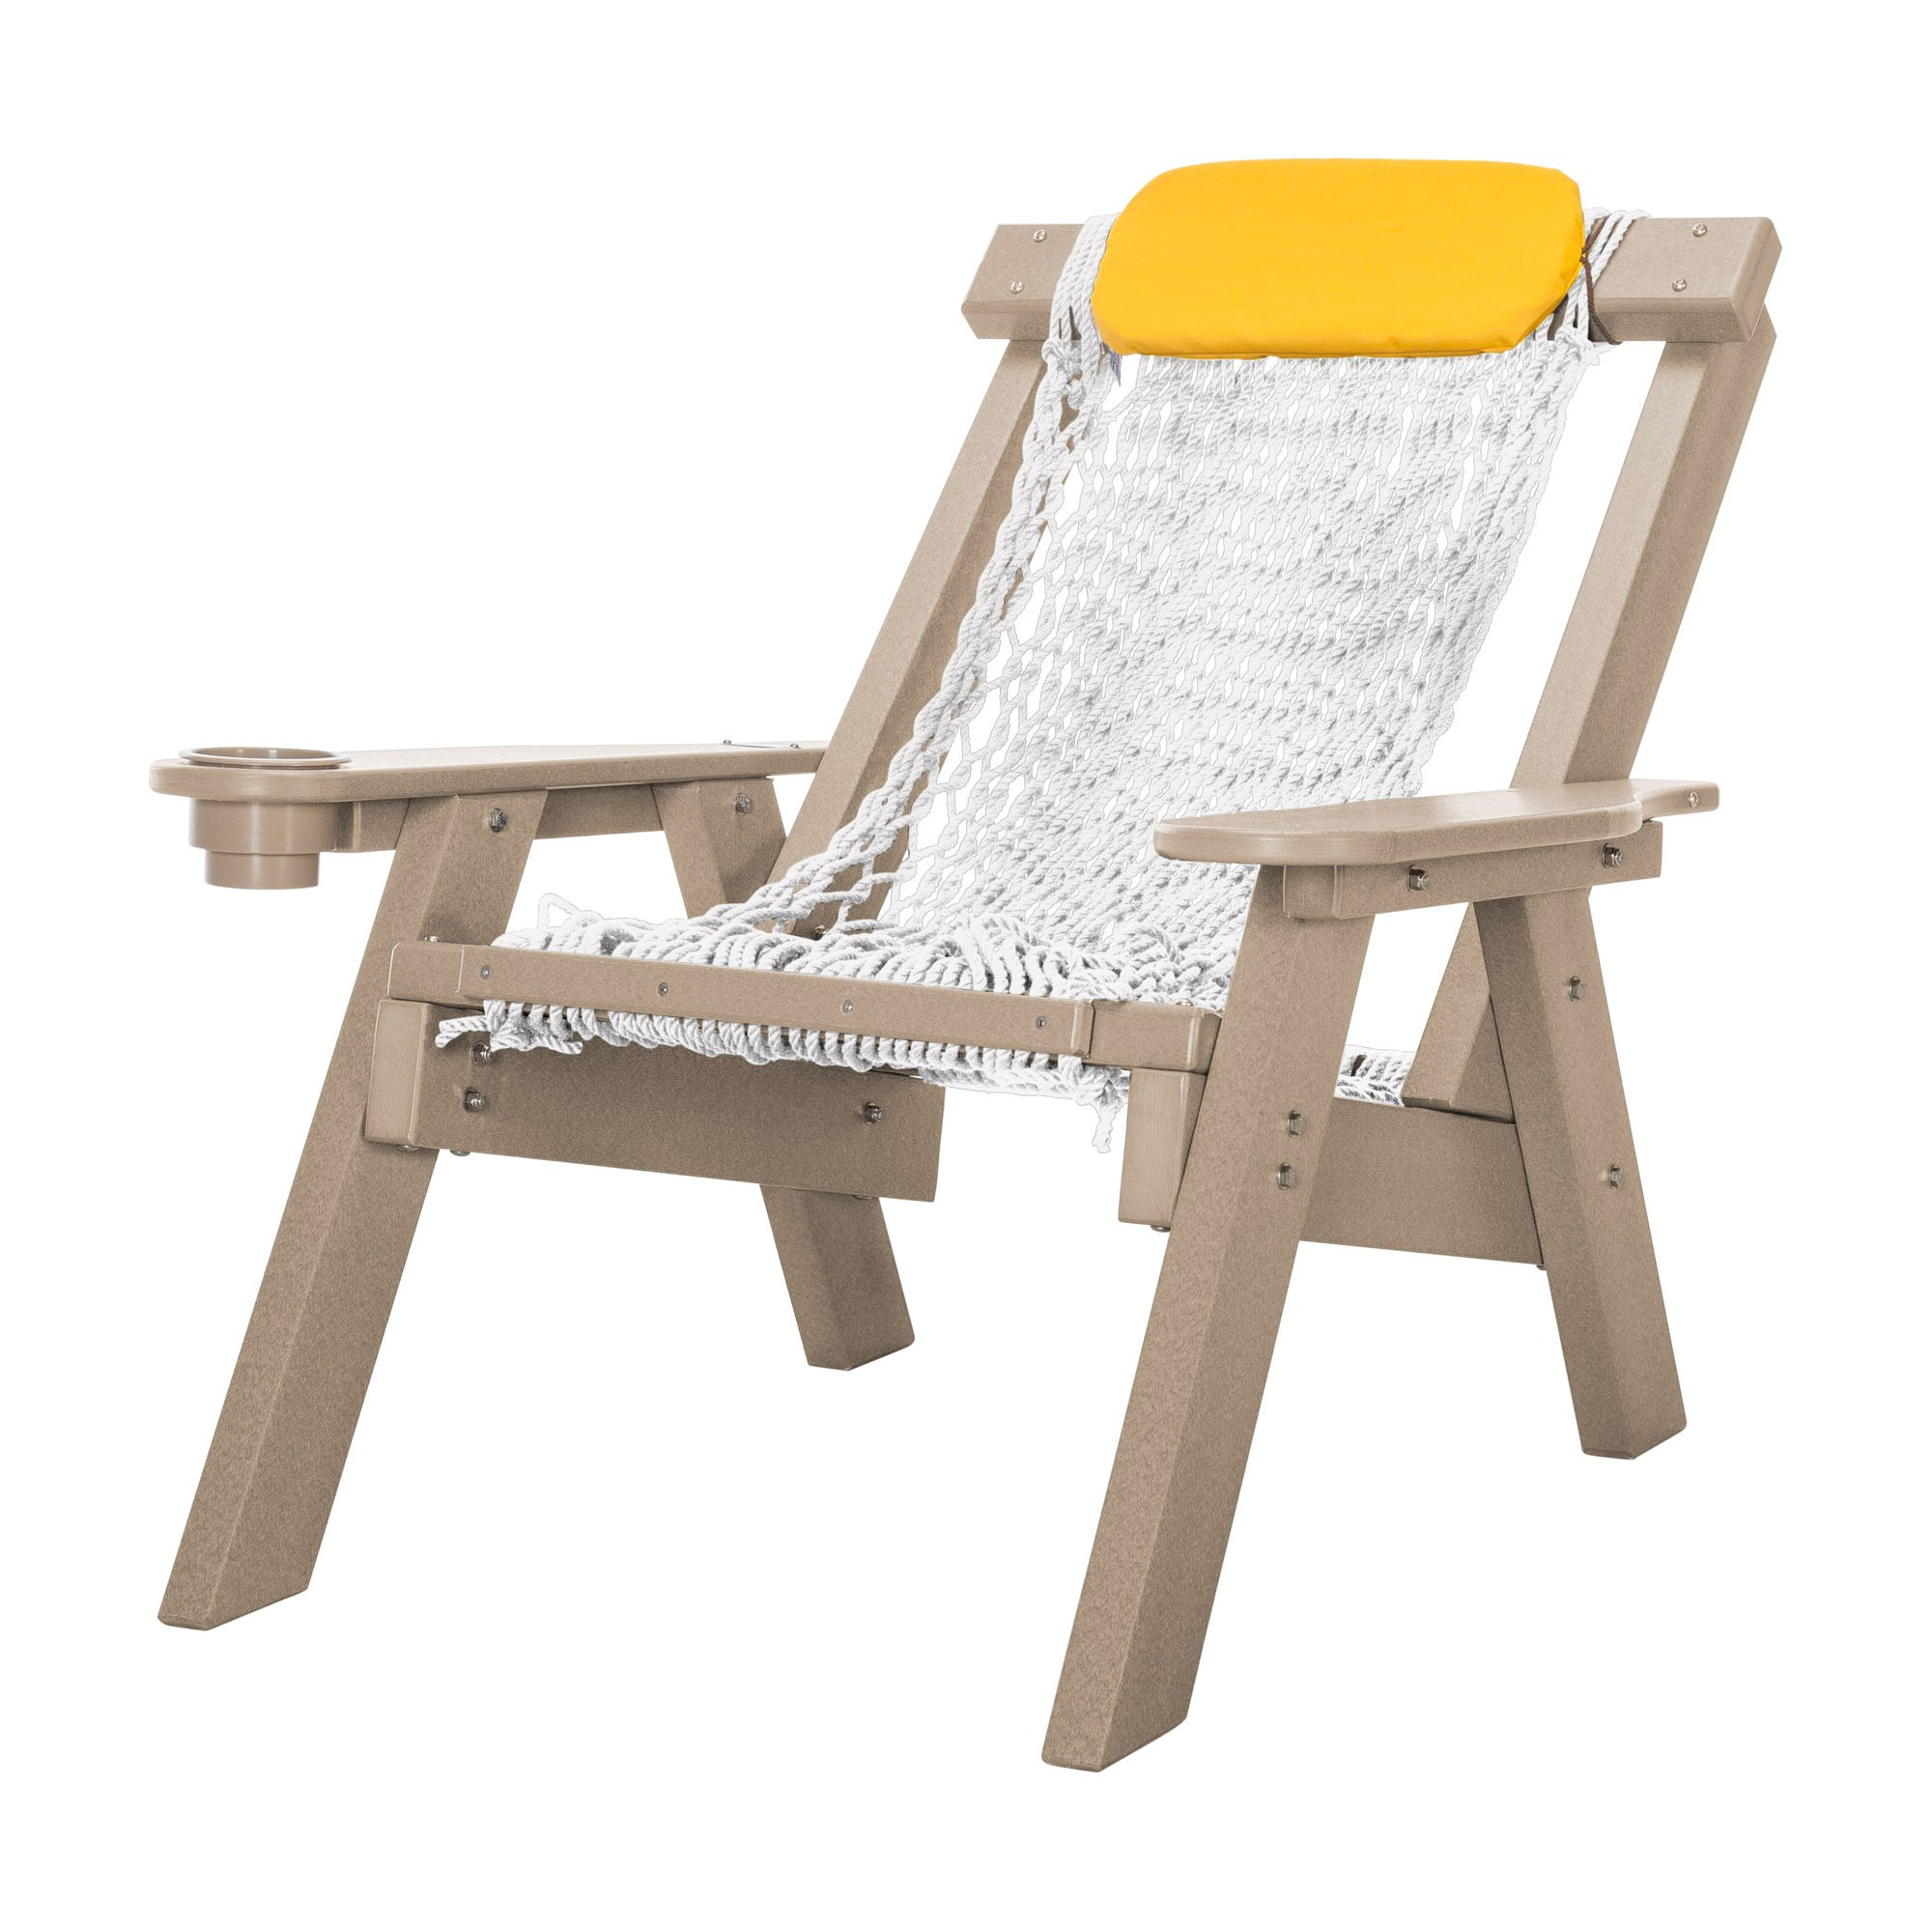 Weatherwood Durawood Single Rope Chair Nags Head